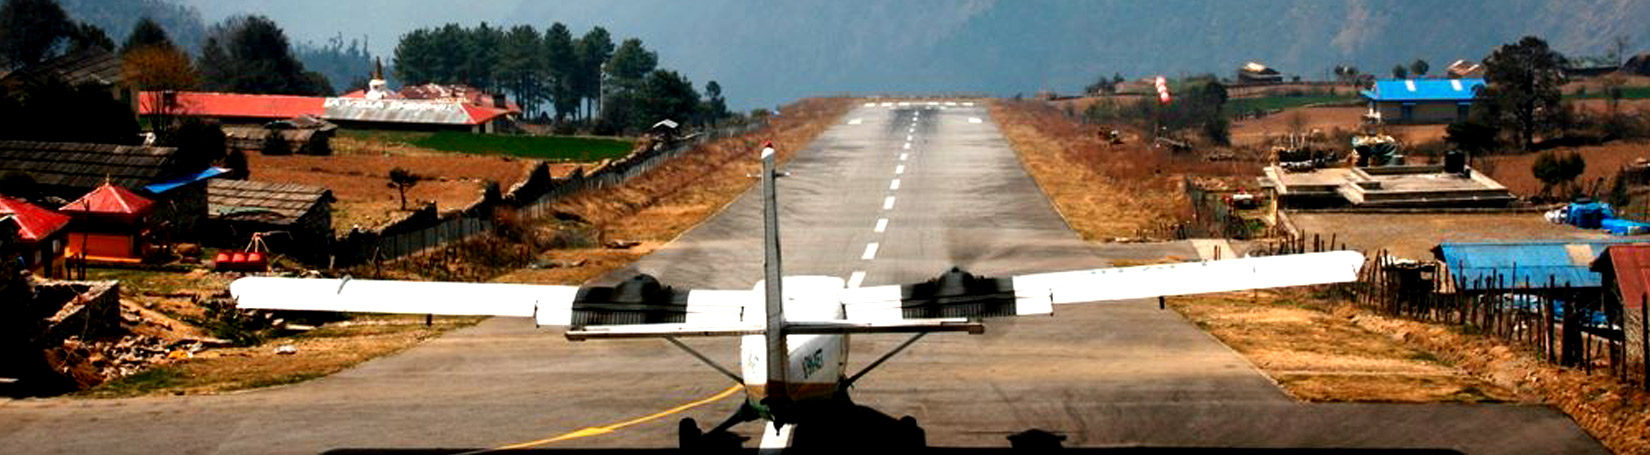 TENZING HILLARY AIRPORT AT LUKLA